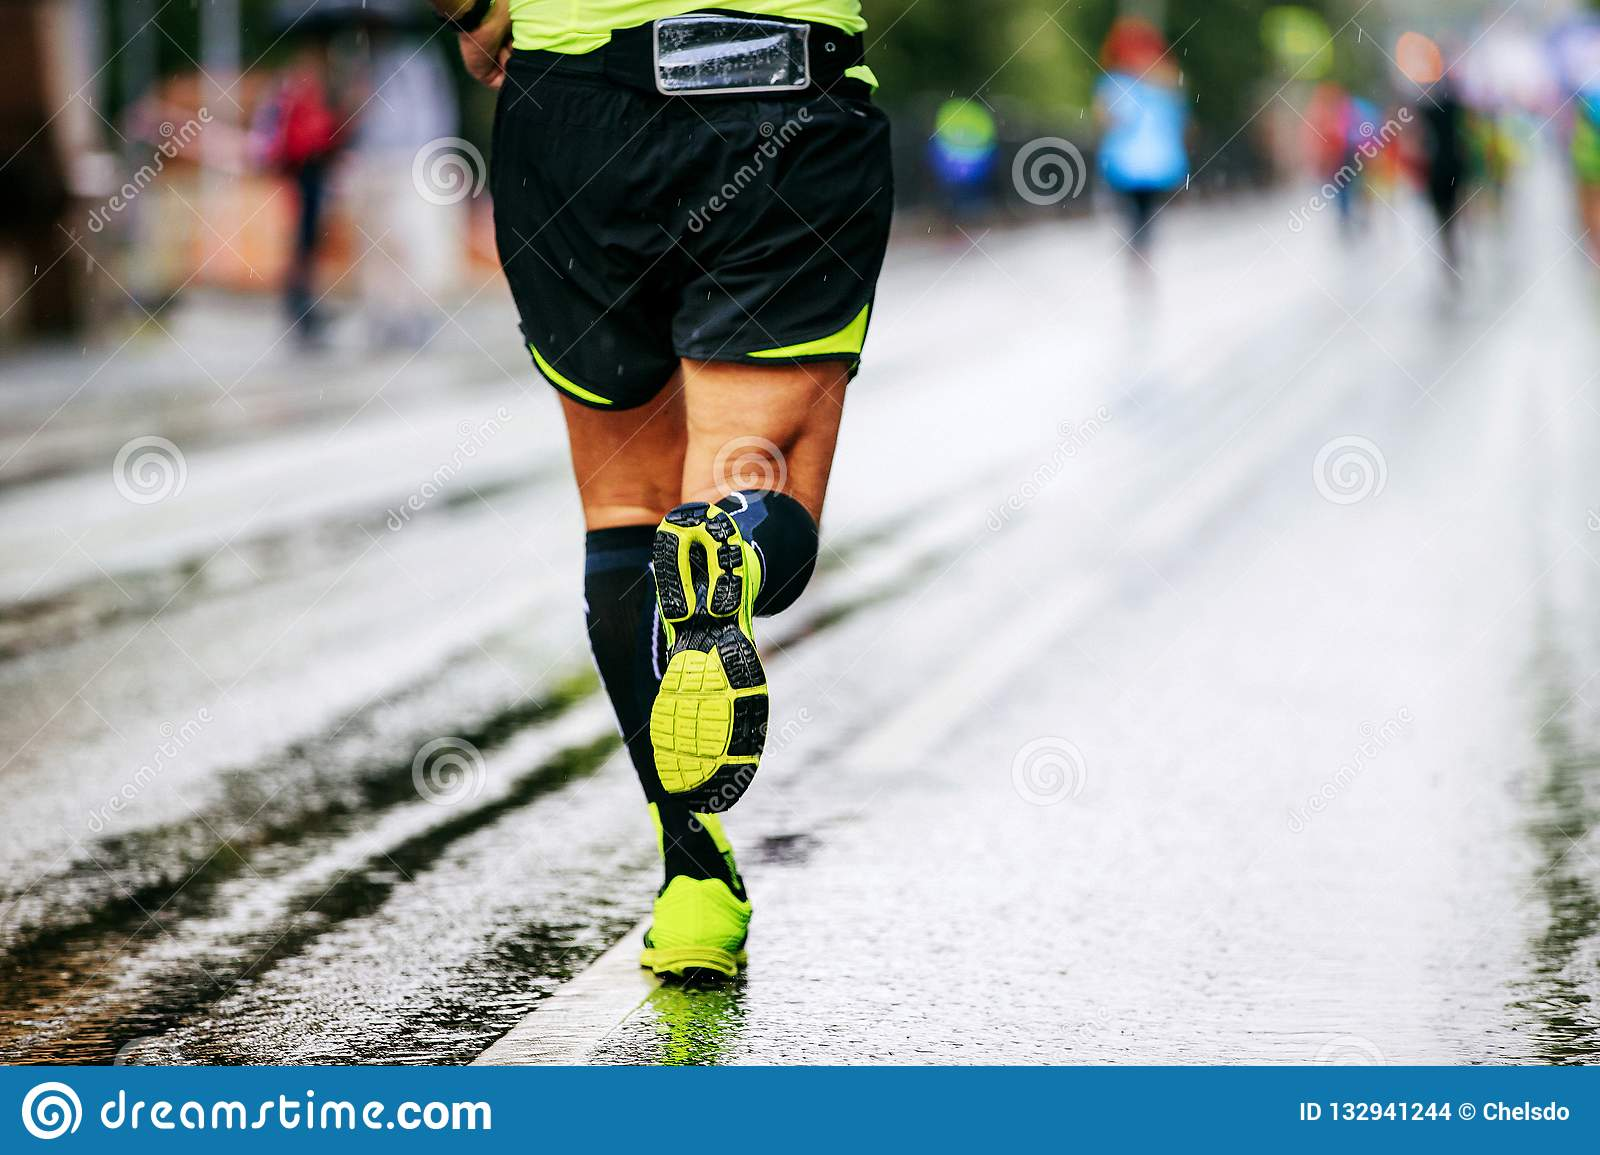 a231c99d06 Back Man Runner In Compression Socks Stock Photo - Image of male ...